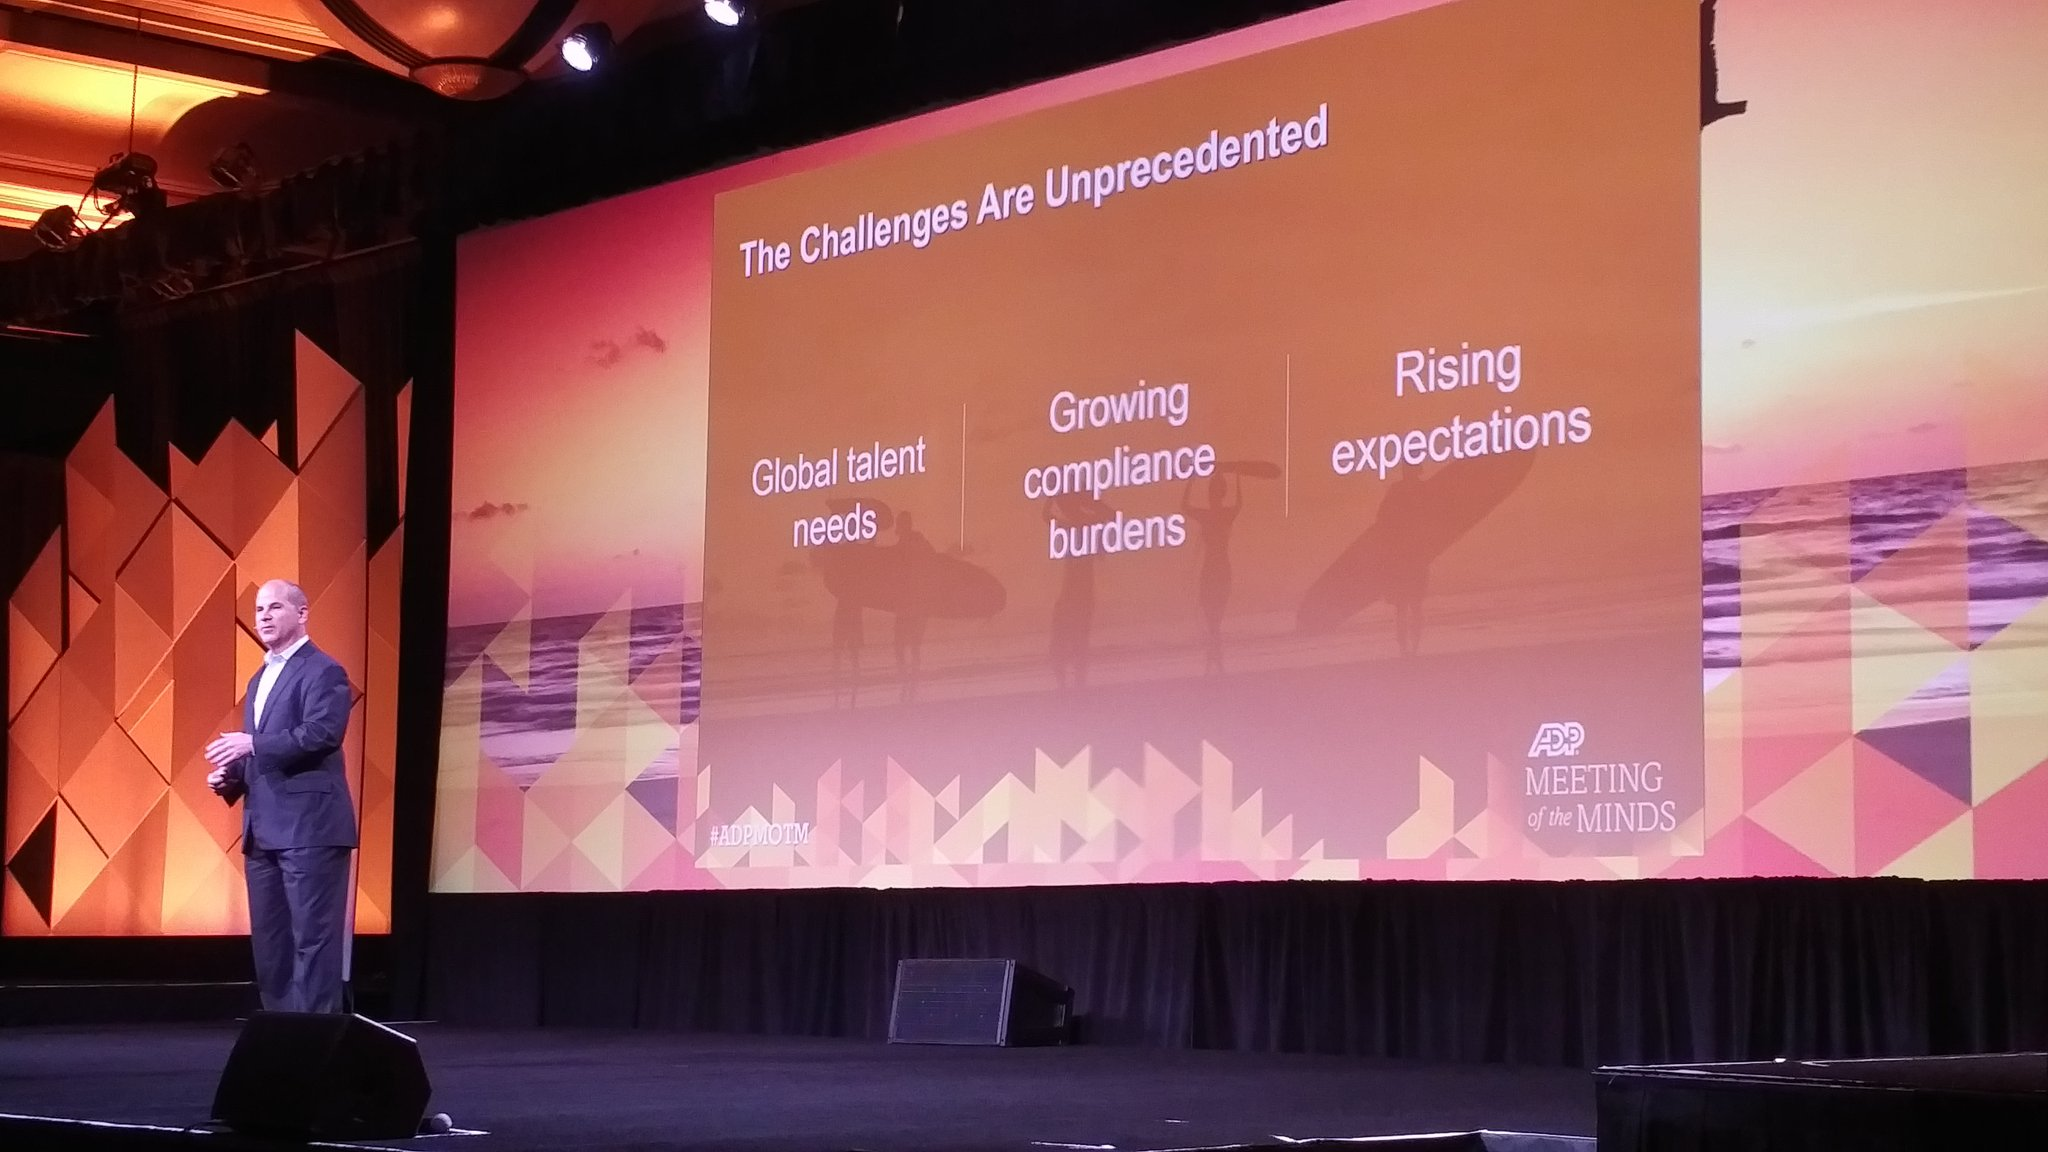 Rodriguez on the changes ahead  - Global talent needs  - growing container burden - rising expectations  #ADPMOTM https://t.co/ecIkQQpBY4